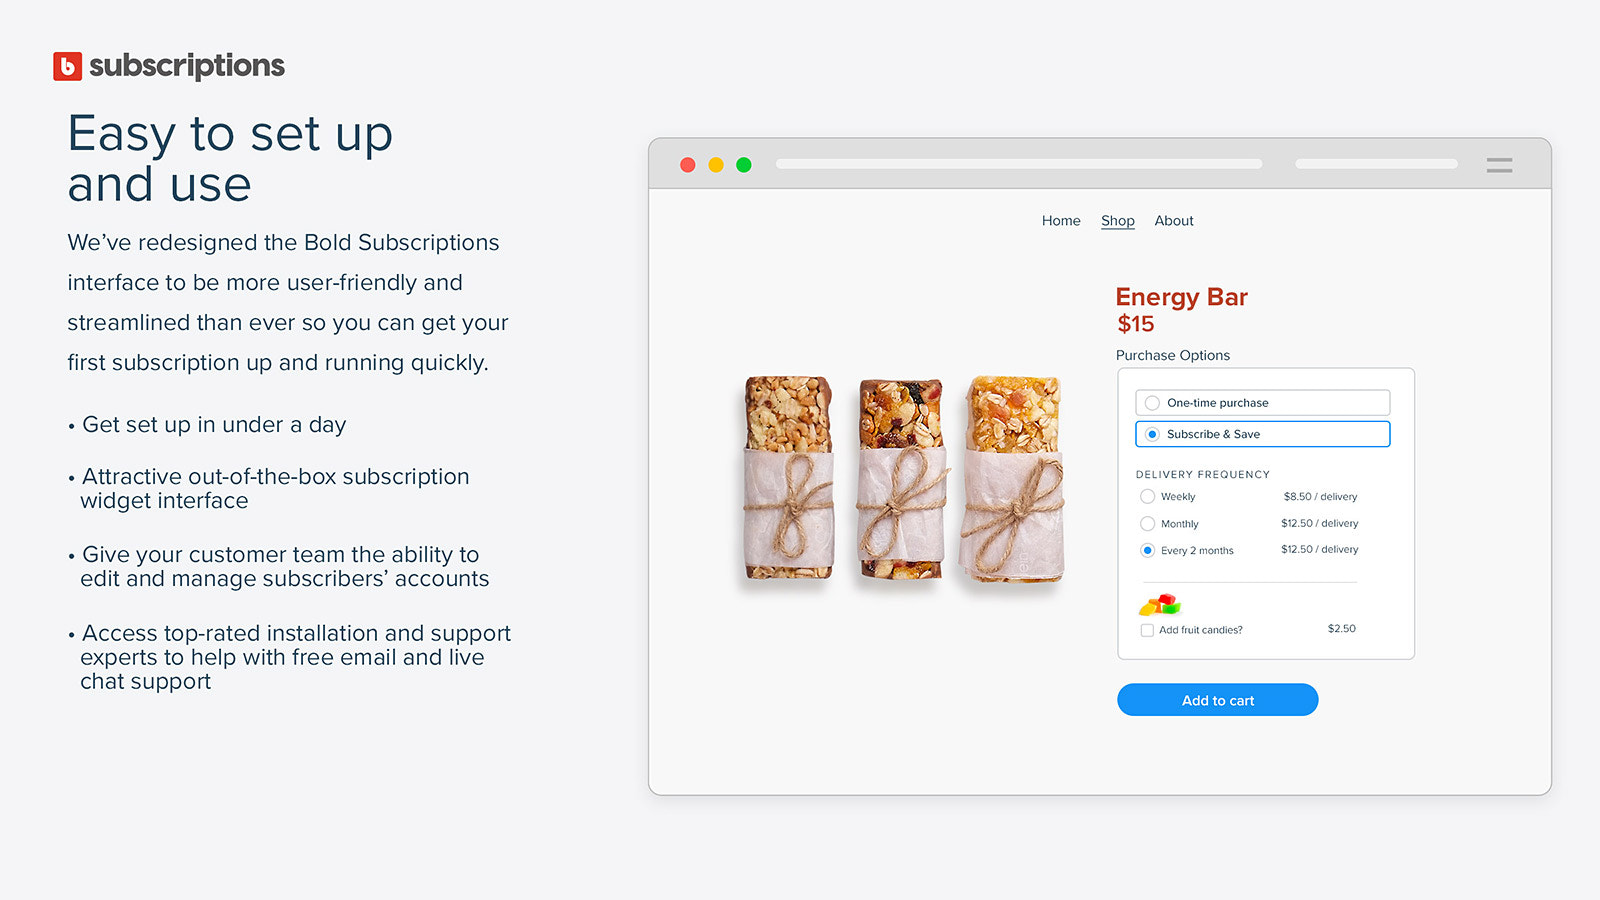 Bold Subscriptions is easy to set up and use.